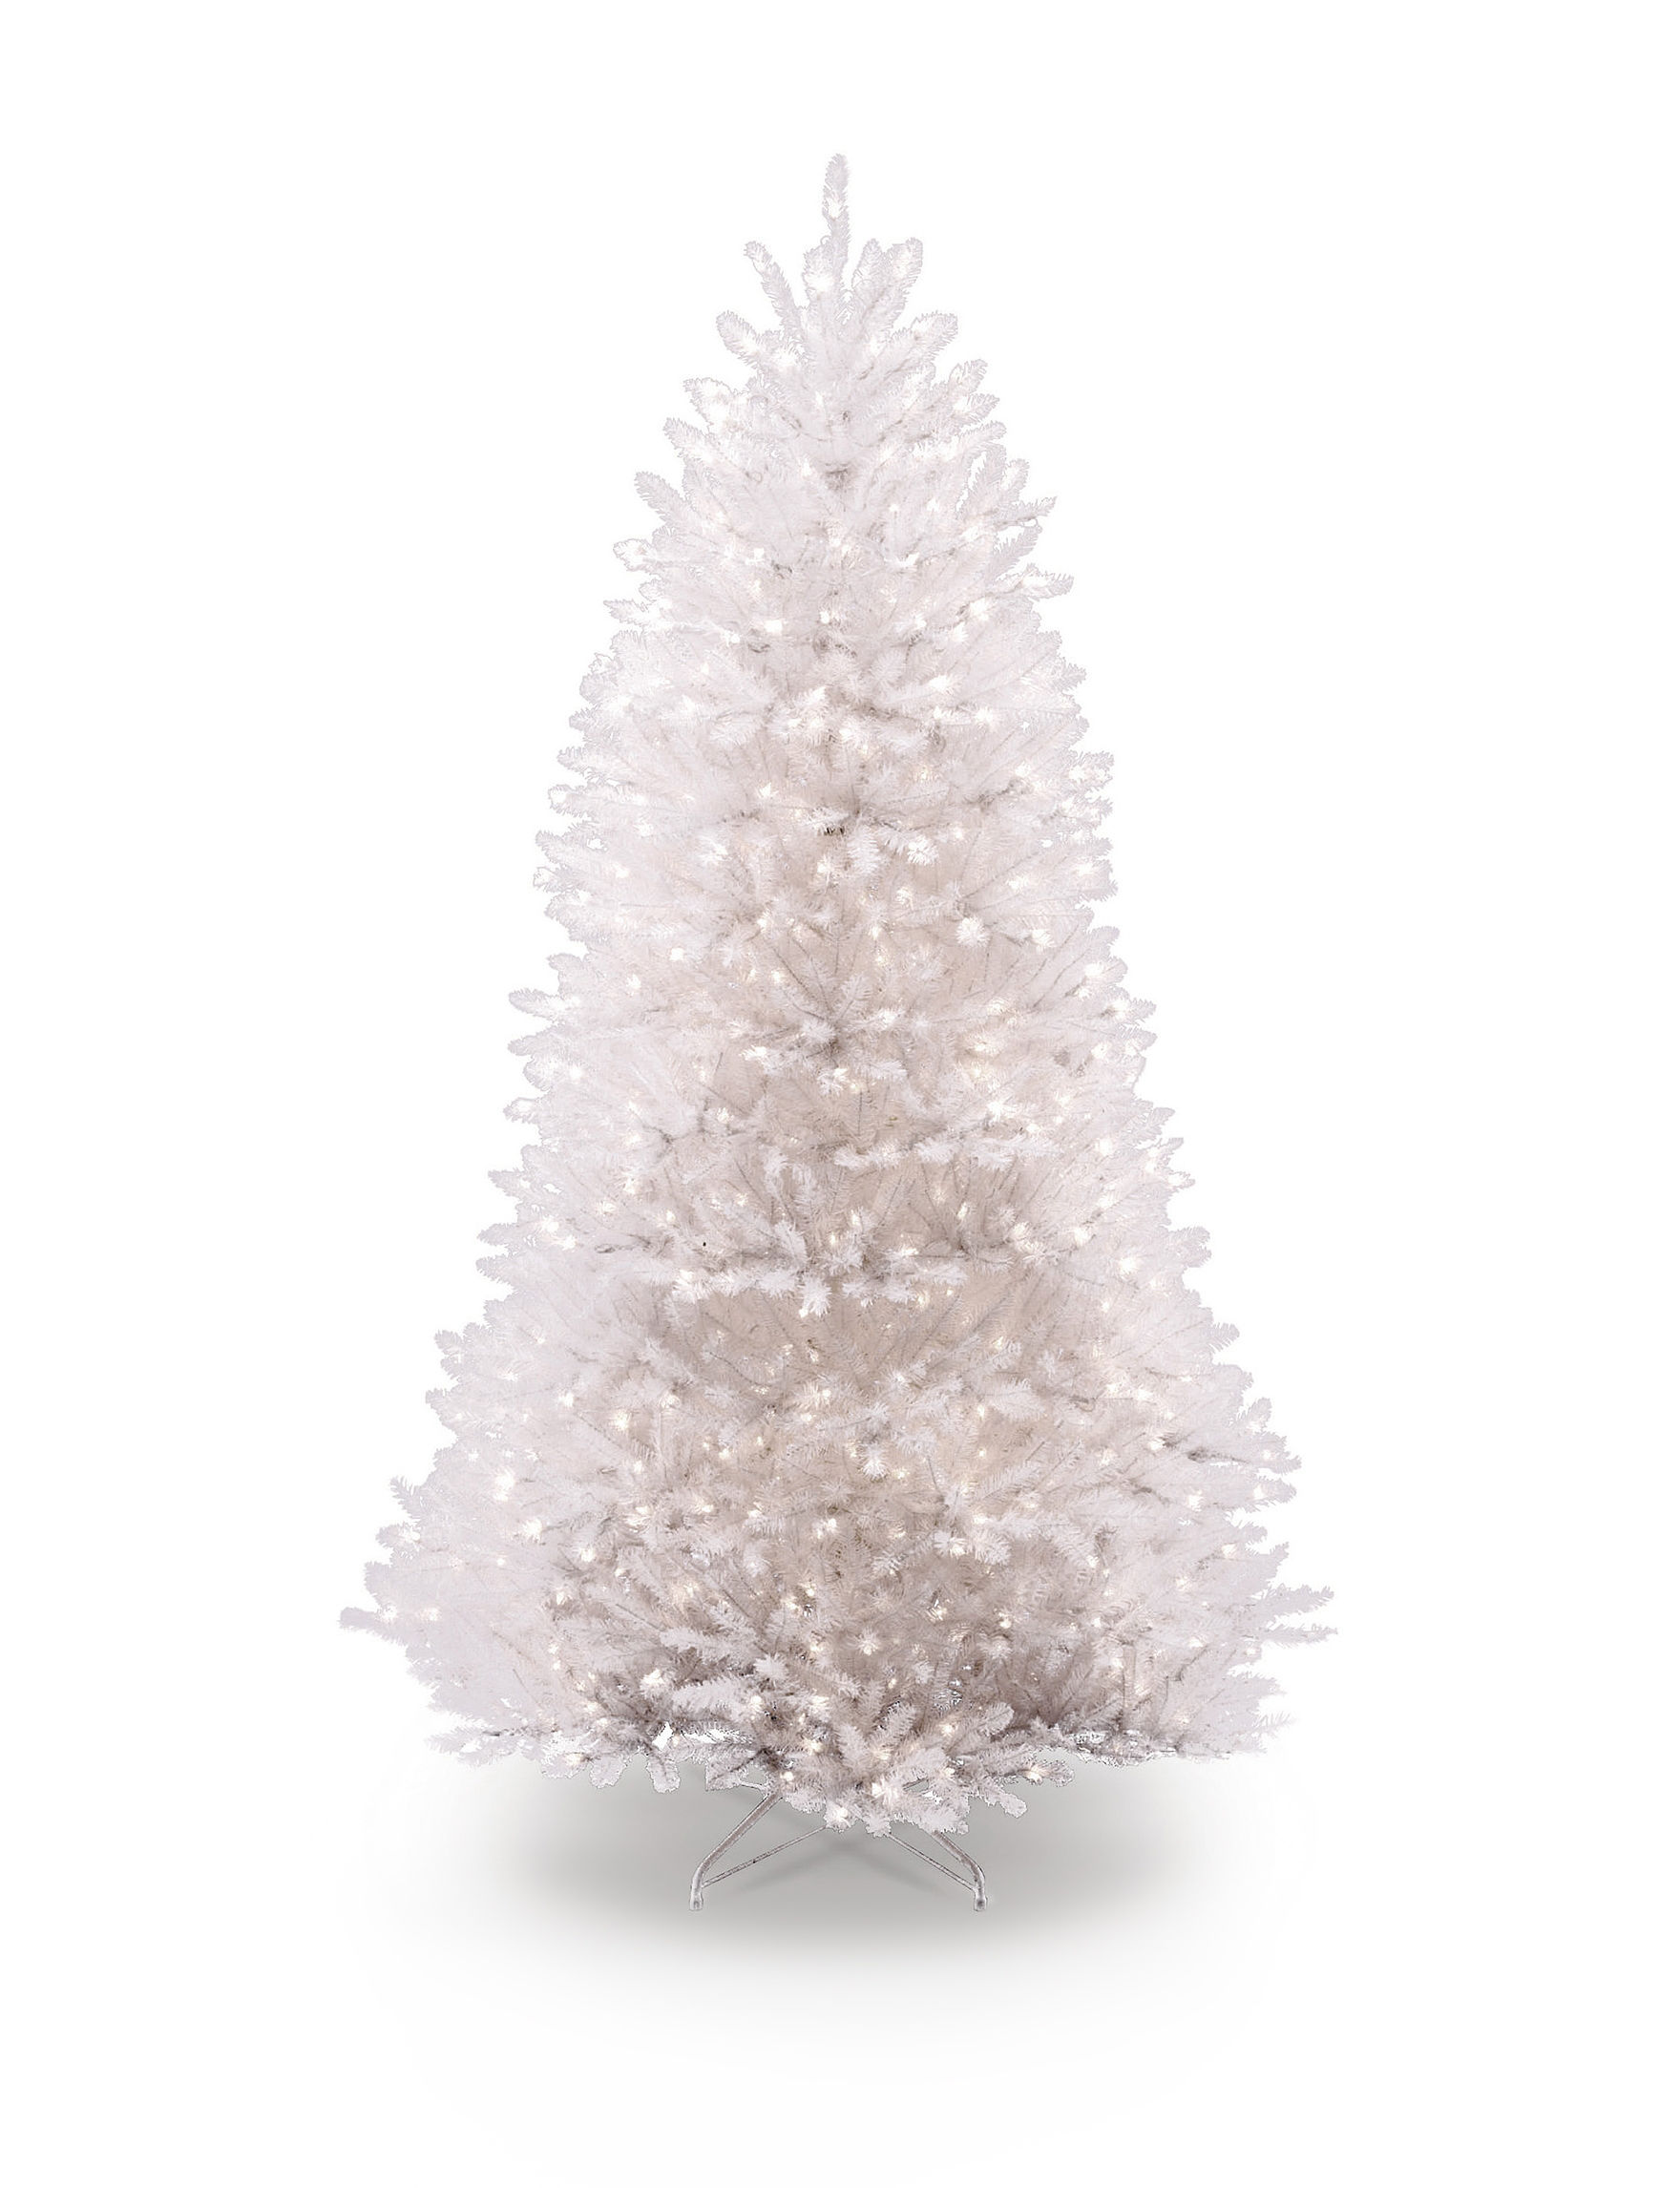 National Tree Company White Christmas Trees Holiday Decor